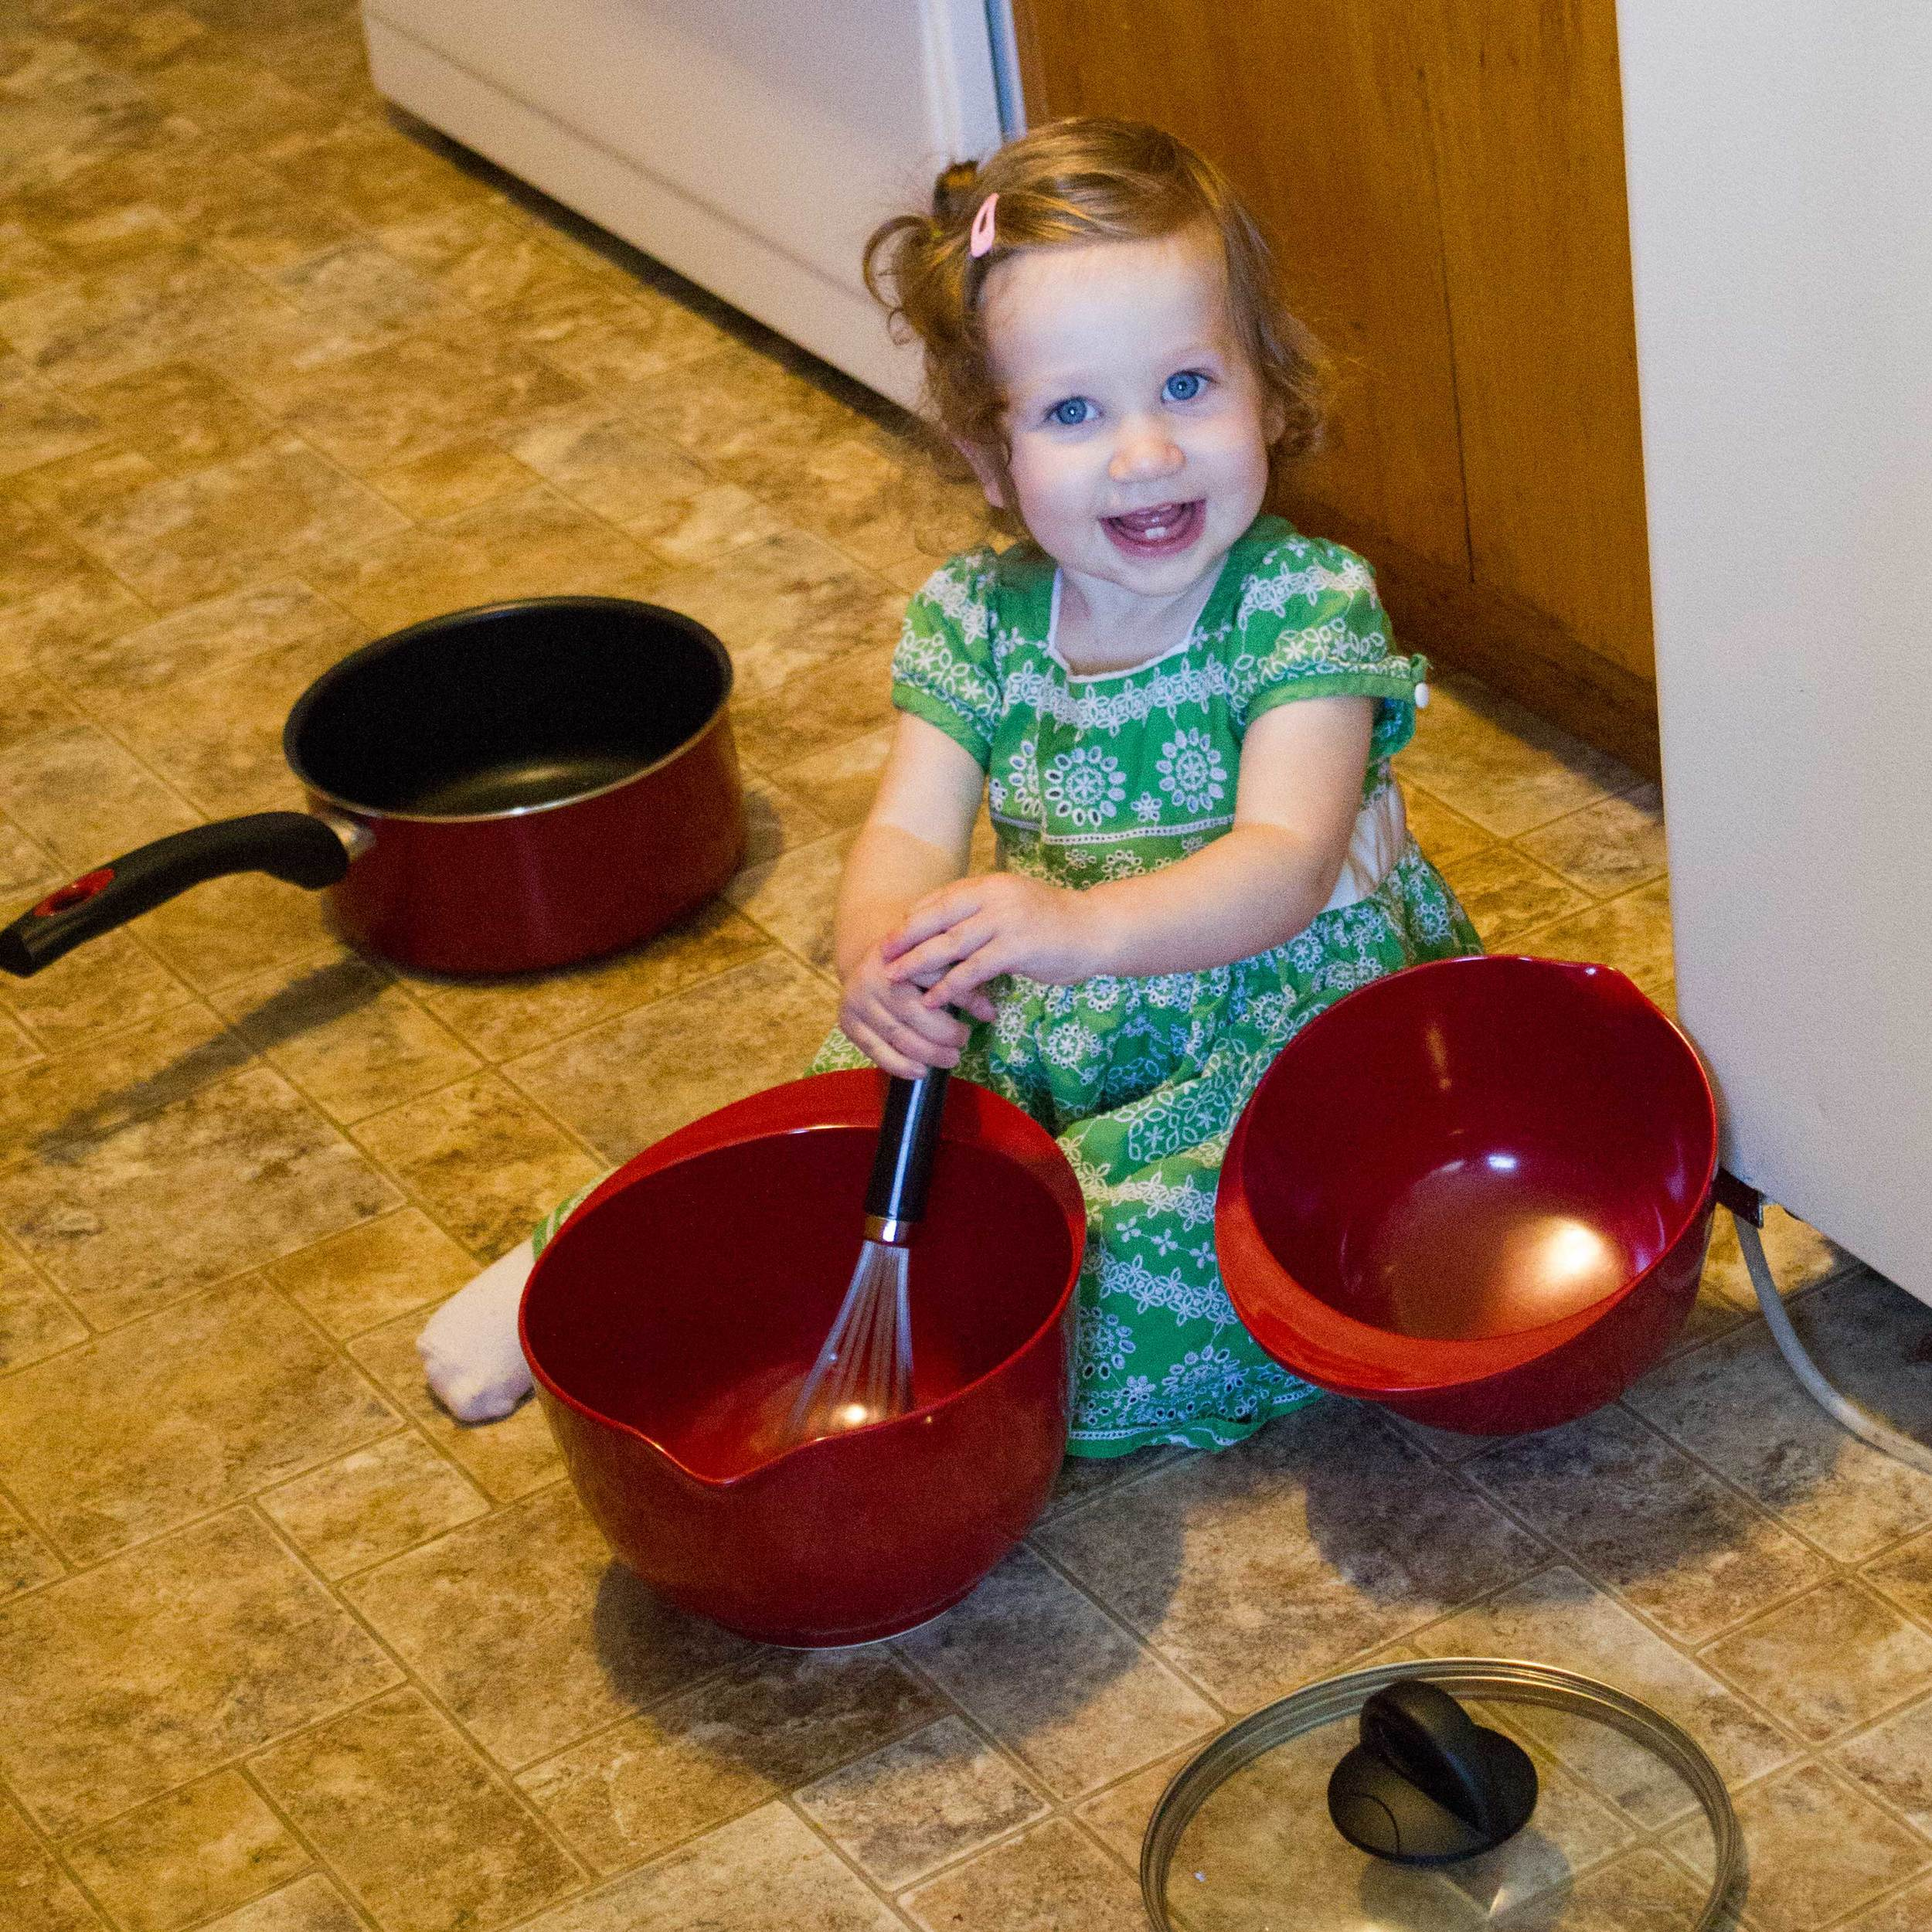 Stirring things up, just like she's seen me do.